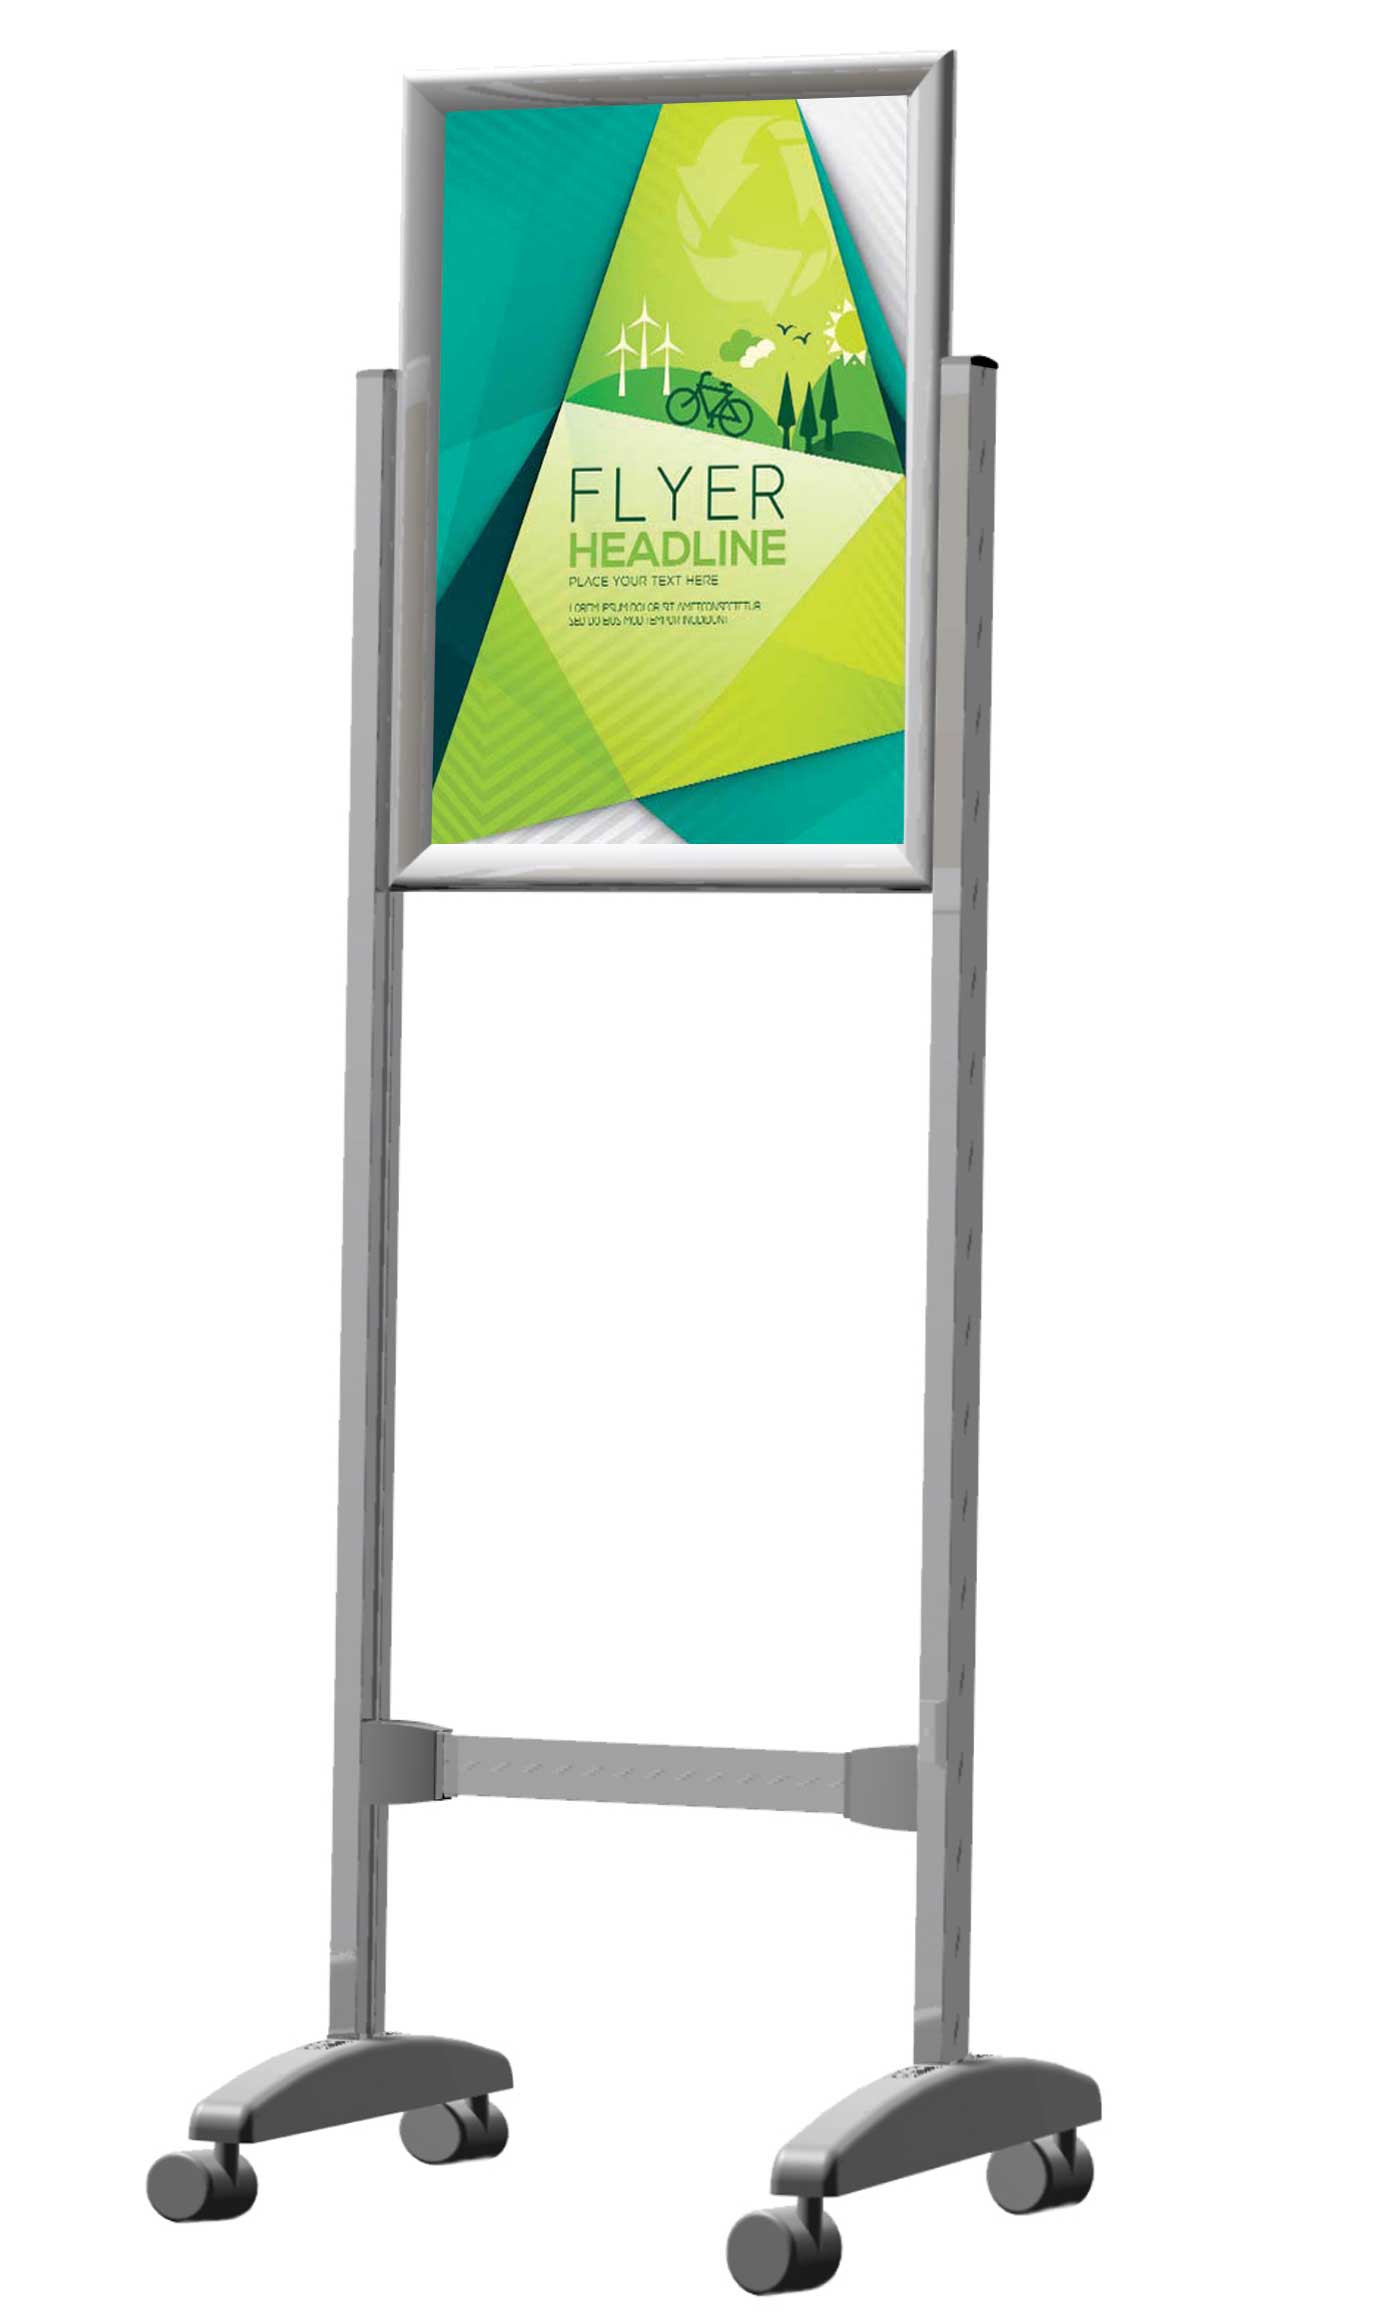 Buy Parrot Poster Frame Stands - Double Sided A1 Online | Tigmoo